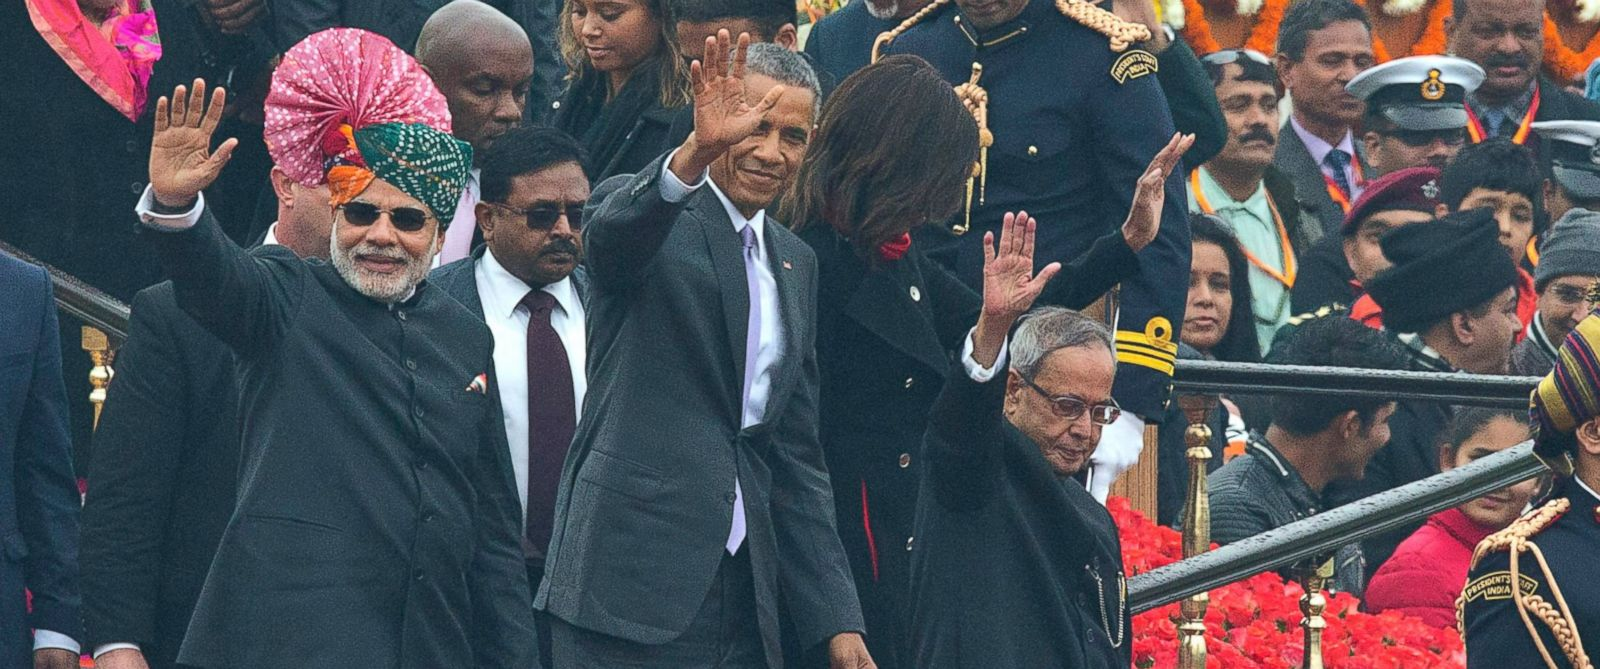 PHOTO: U.S. President Barack Obama, Indian Prime Minister Narendra Modi, left, and President Pranab Mukherjee wave to the crowd at the end of India?s annual Republic Day parade in New Delhi, India, Jan. 26, 2015.